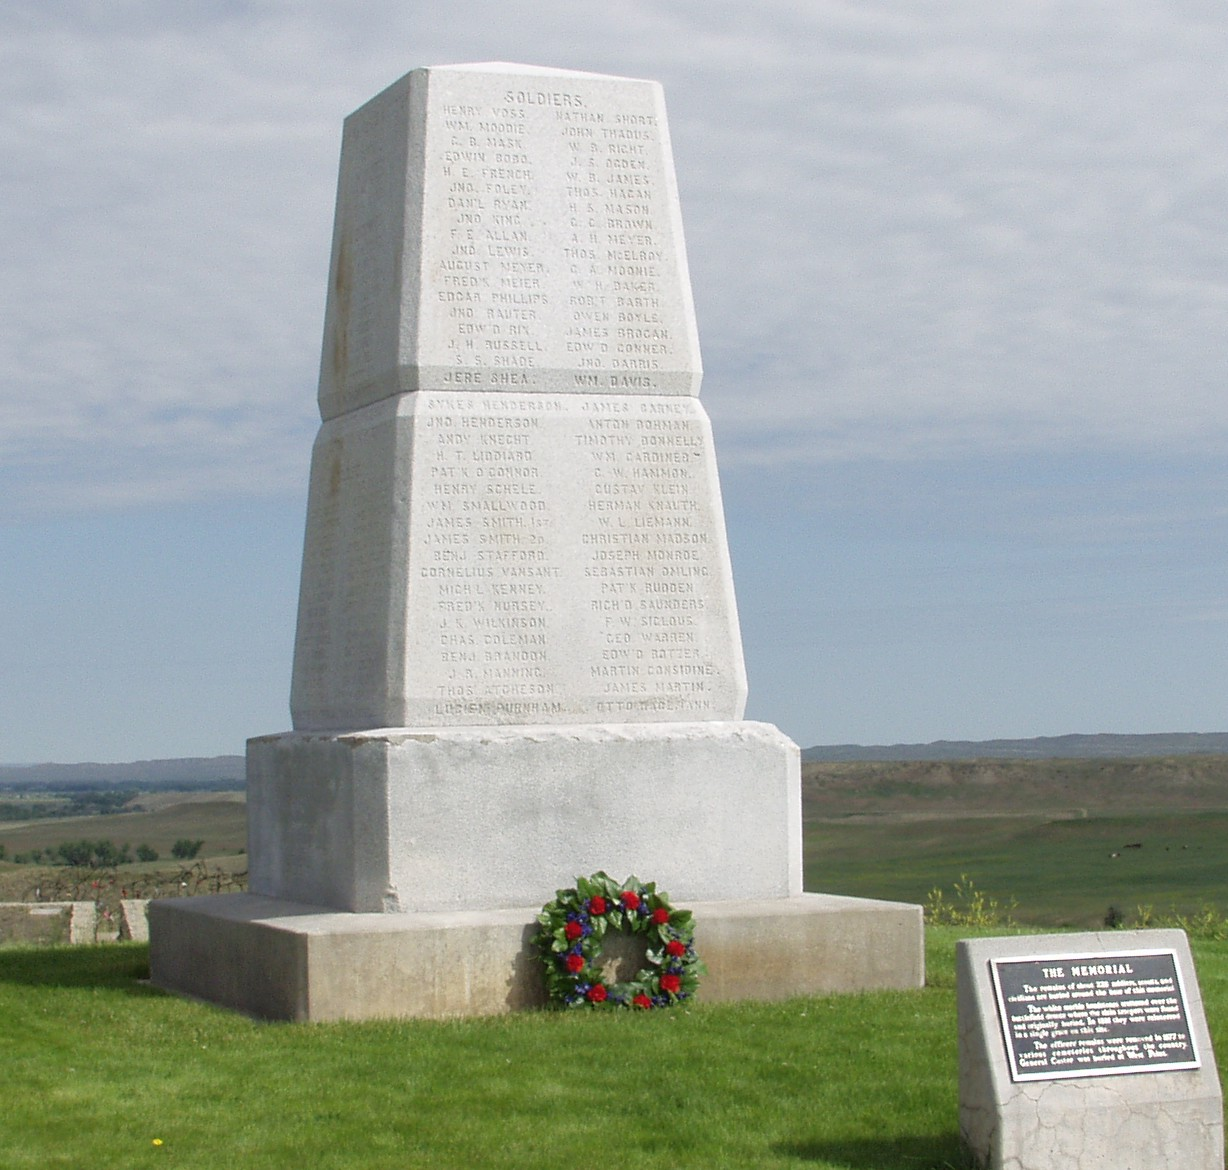 The memorial commemorates one of the worst military defeats for the US Army after a fateful decision and a victory by Plains Indians.